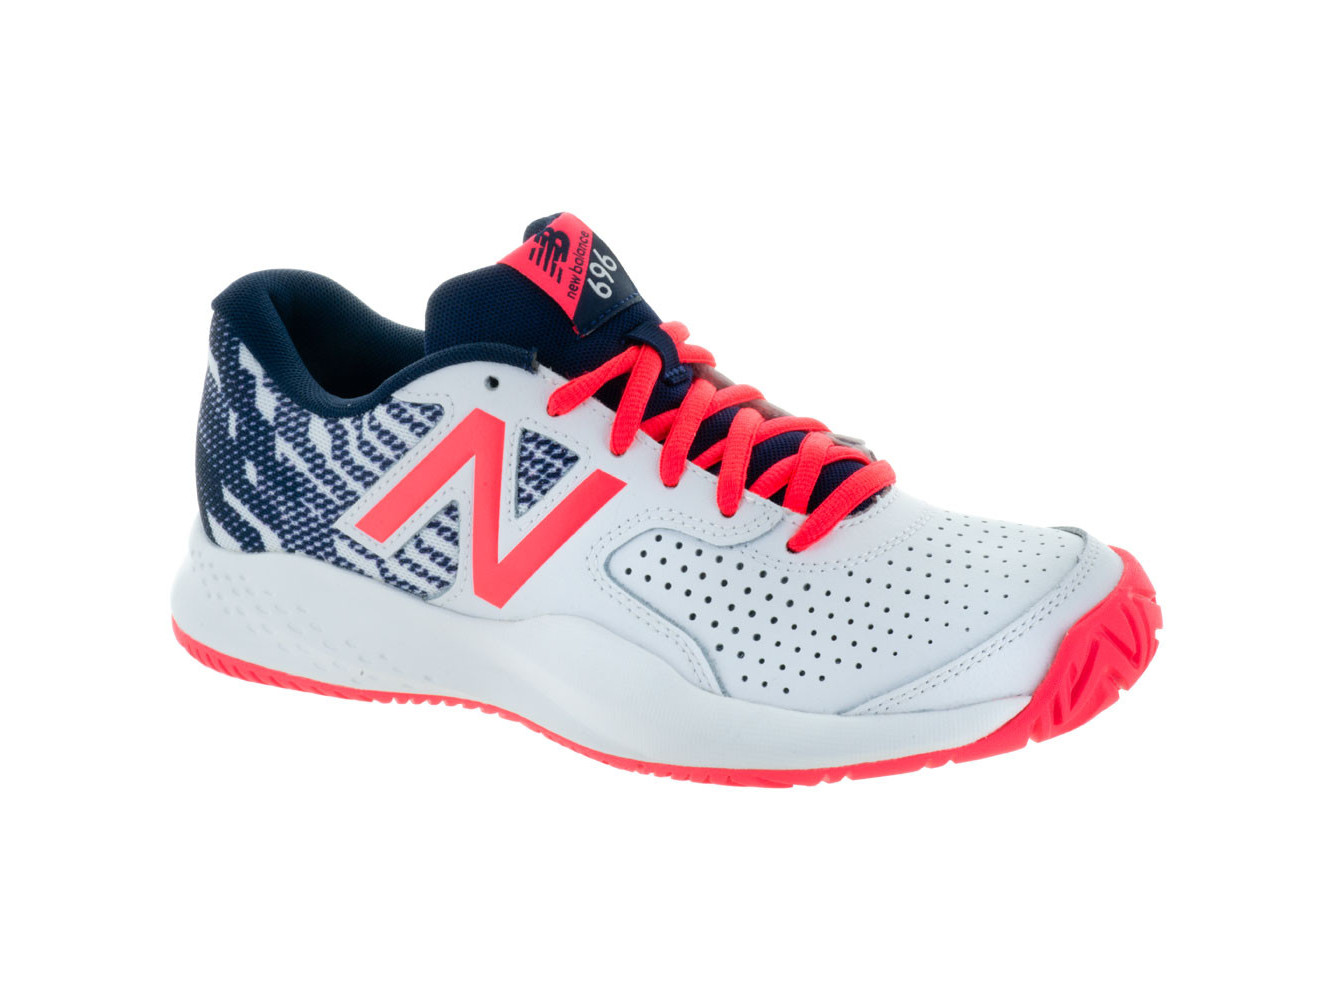 New Balance Womens Wch696s3 Low Top Lace Up Running Sneaker by New Balance